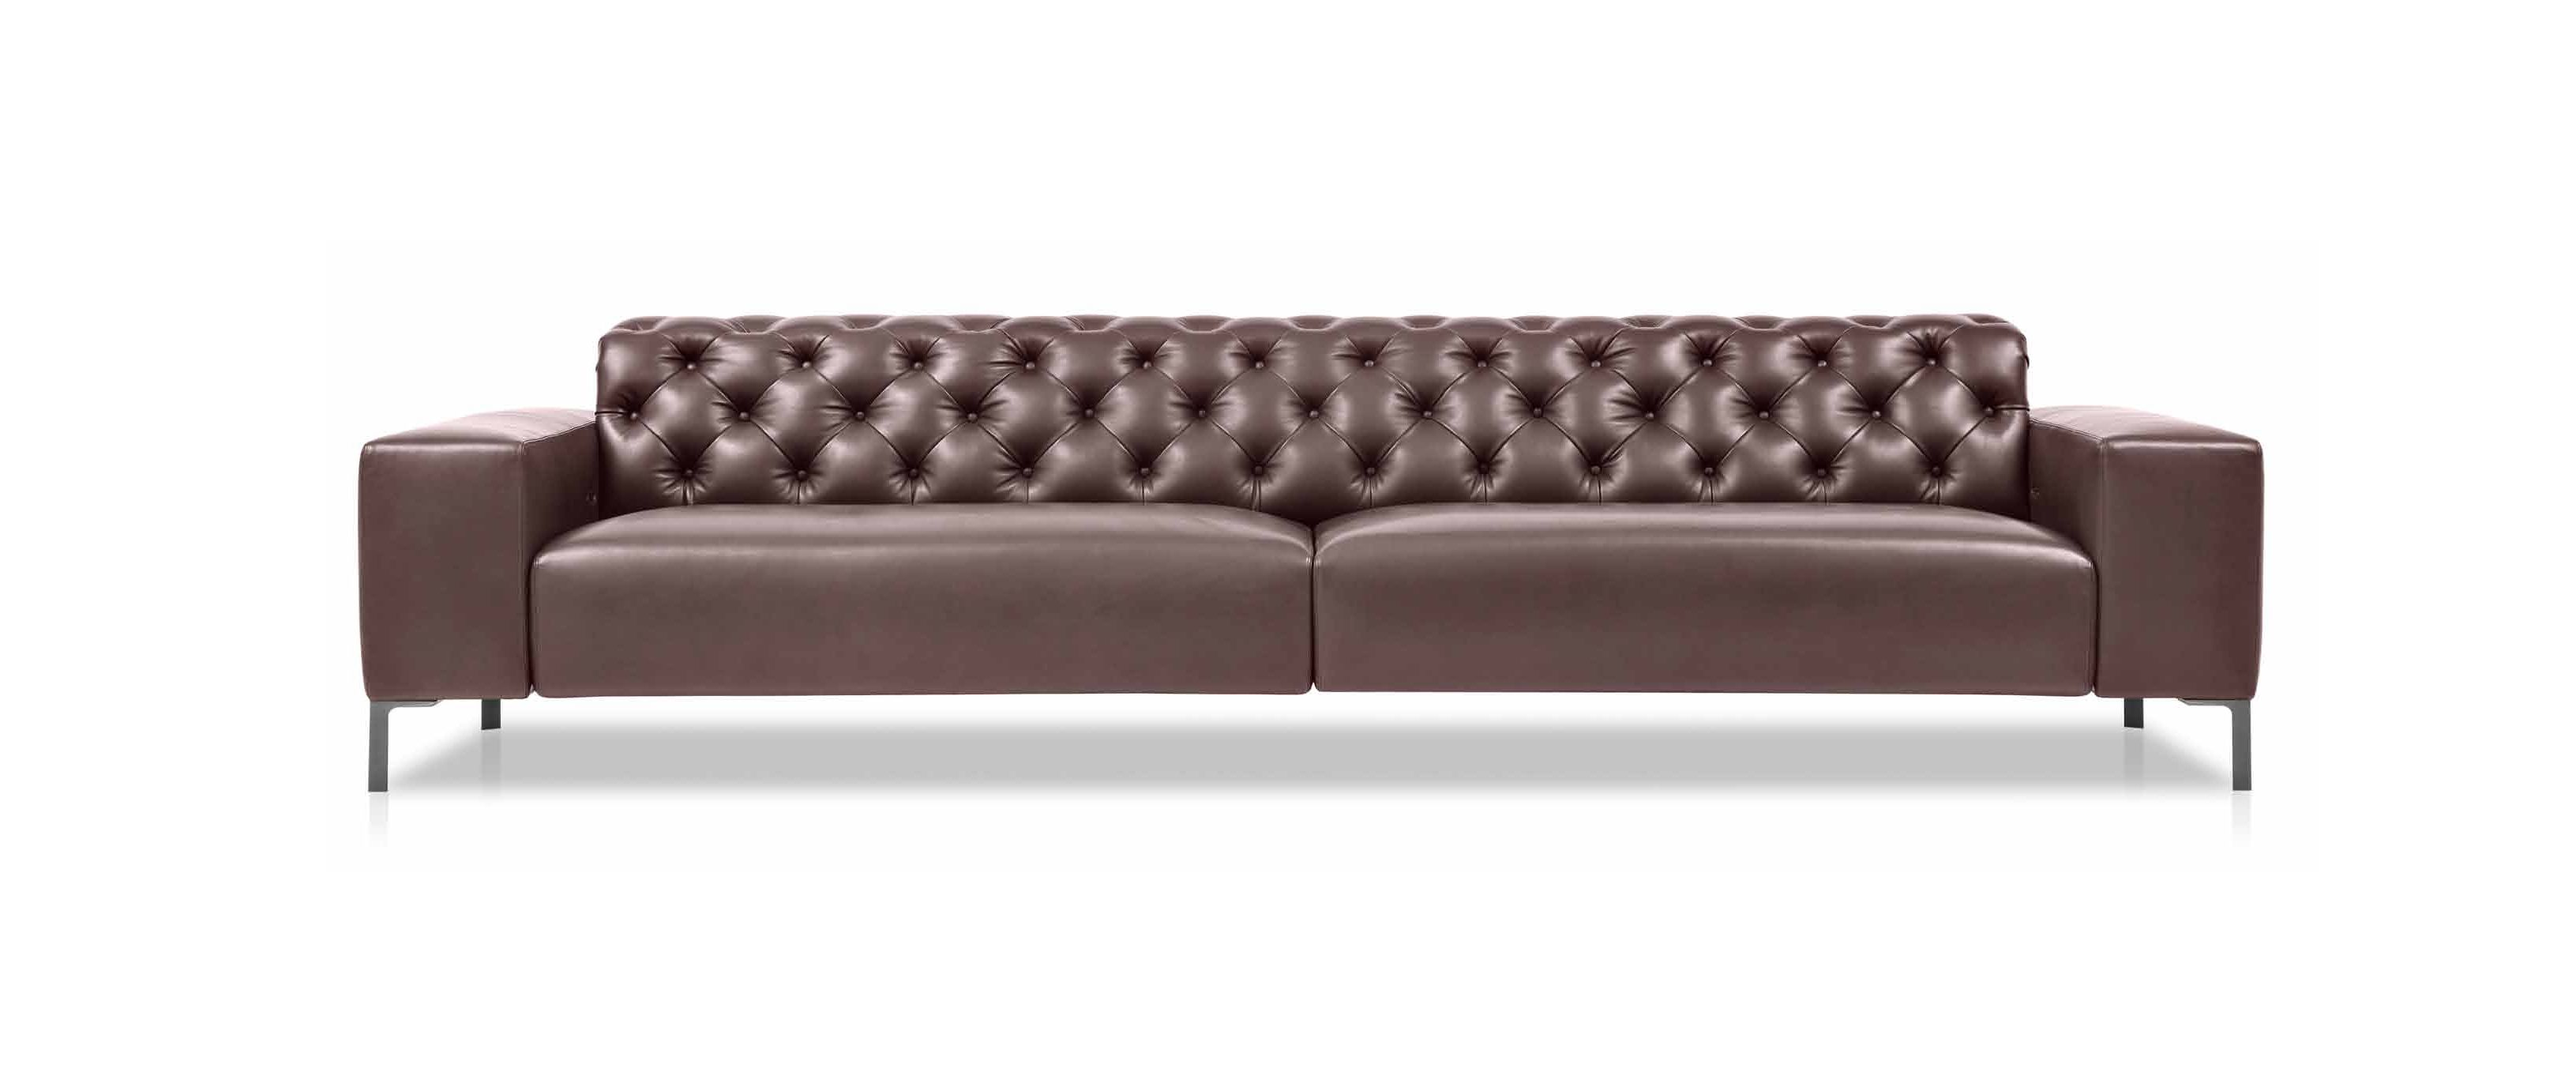 Boston Kanap - Boston Sofa Gy Rt - Manufacturer Pianca